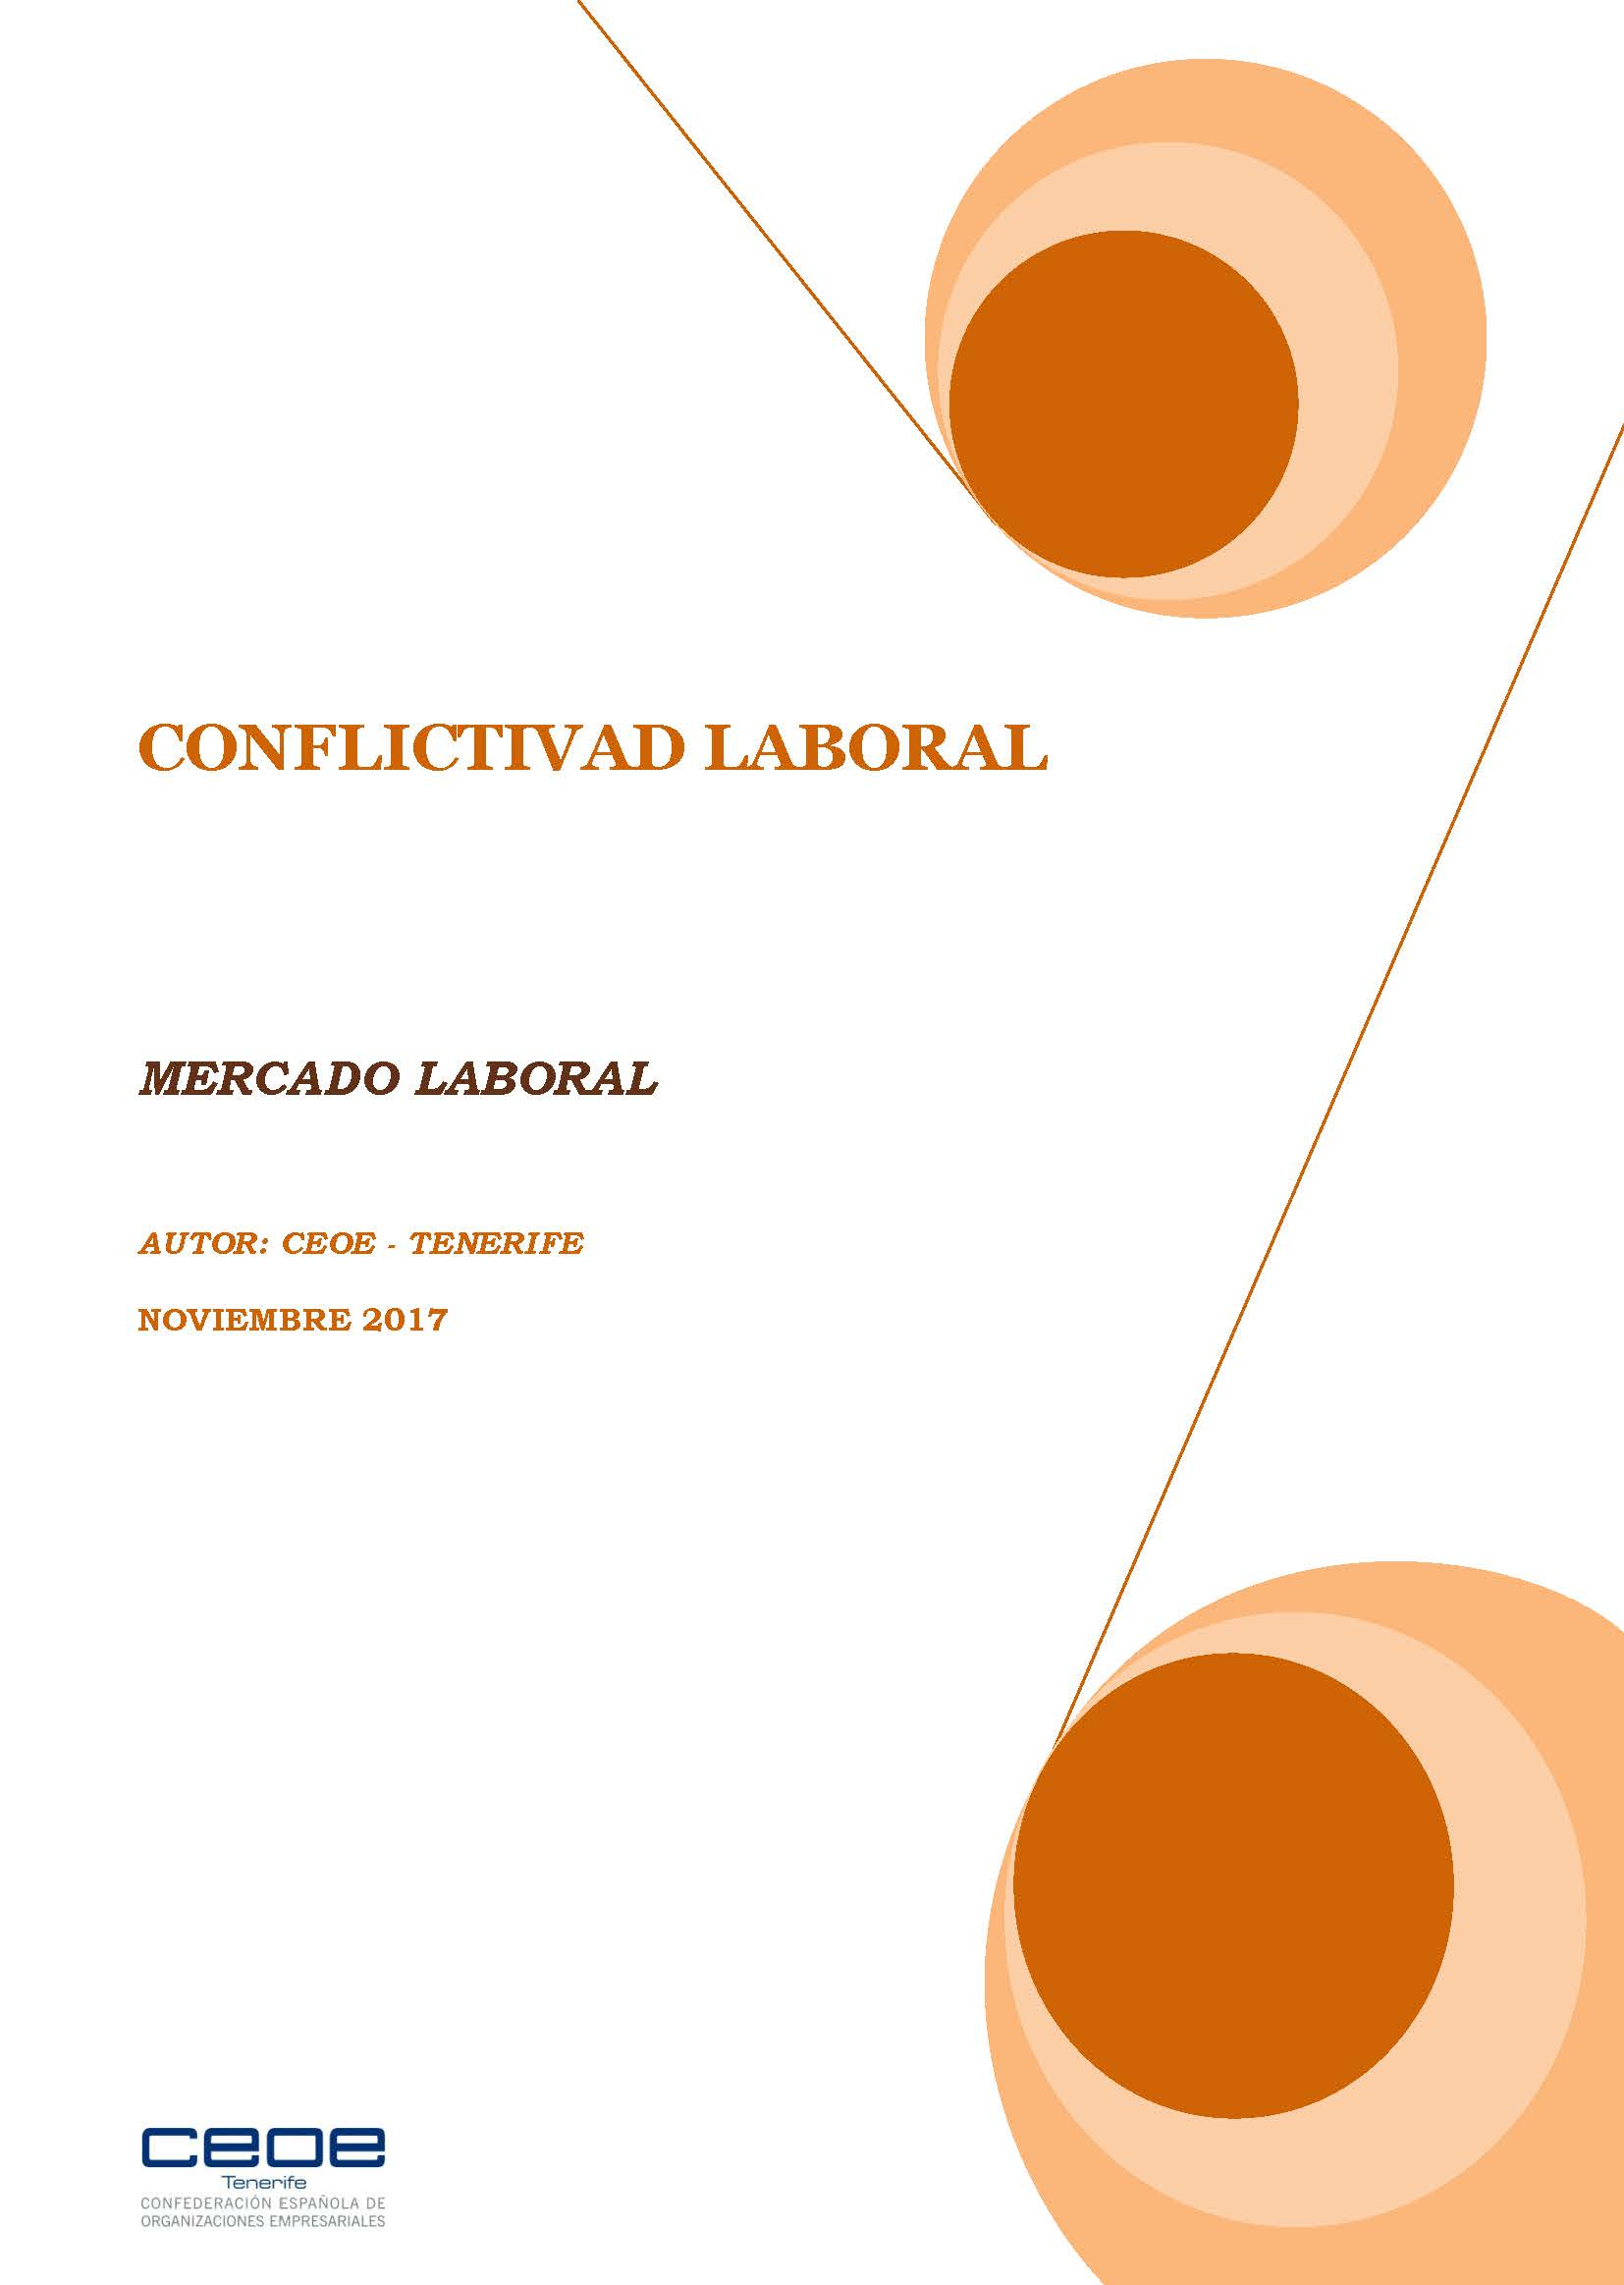 MERCADO LABORAL - CONFLICTIVIDAD LABORAL NOV 2017